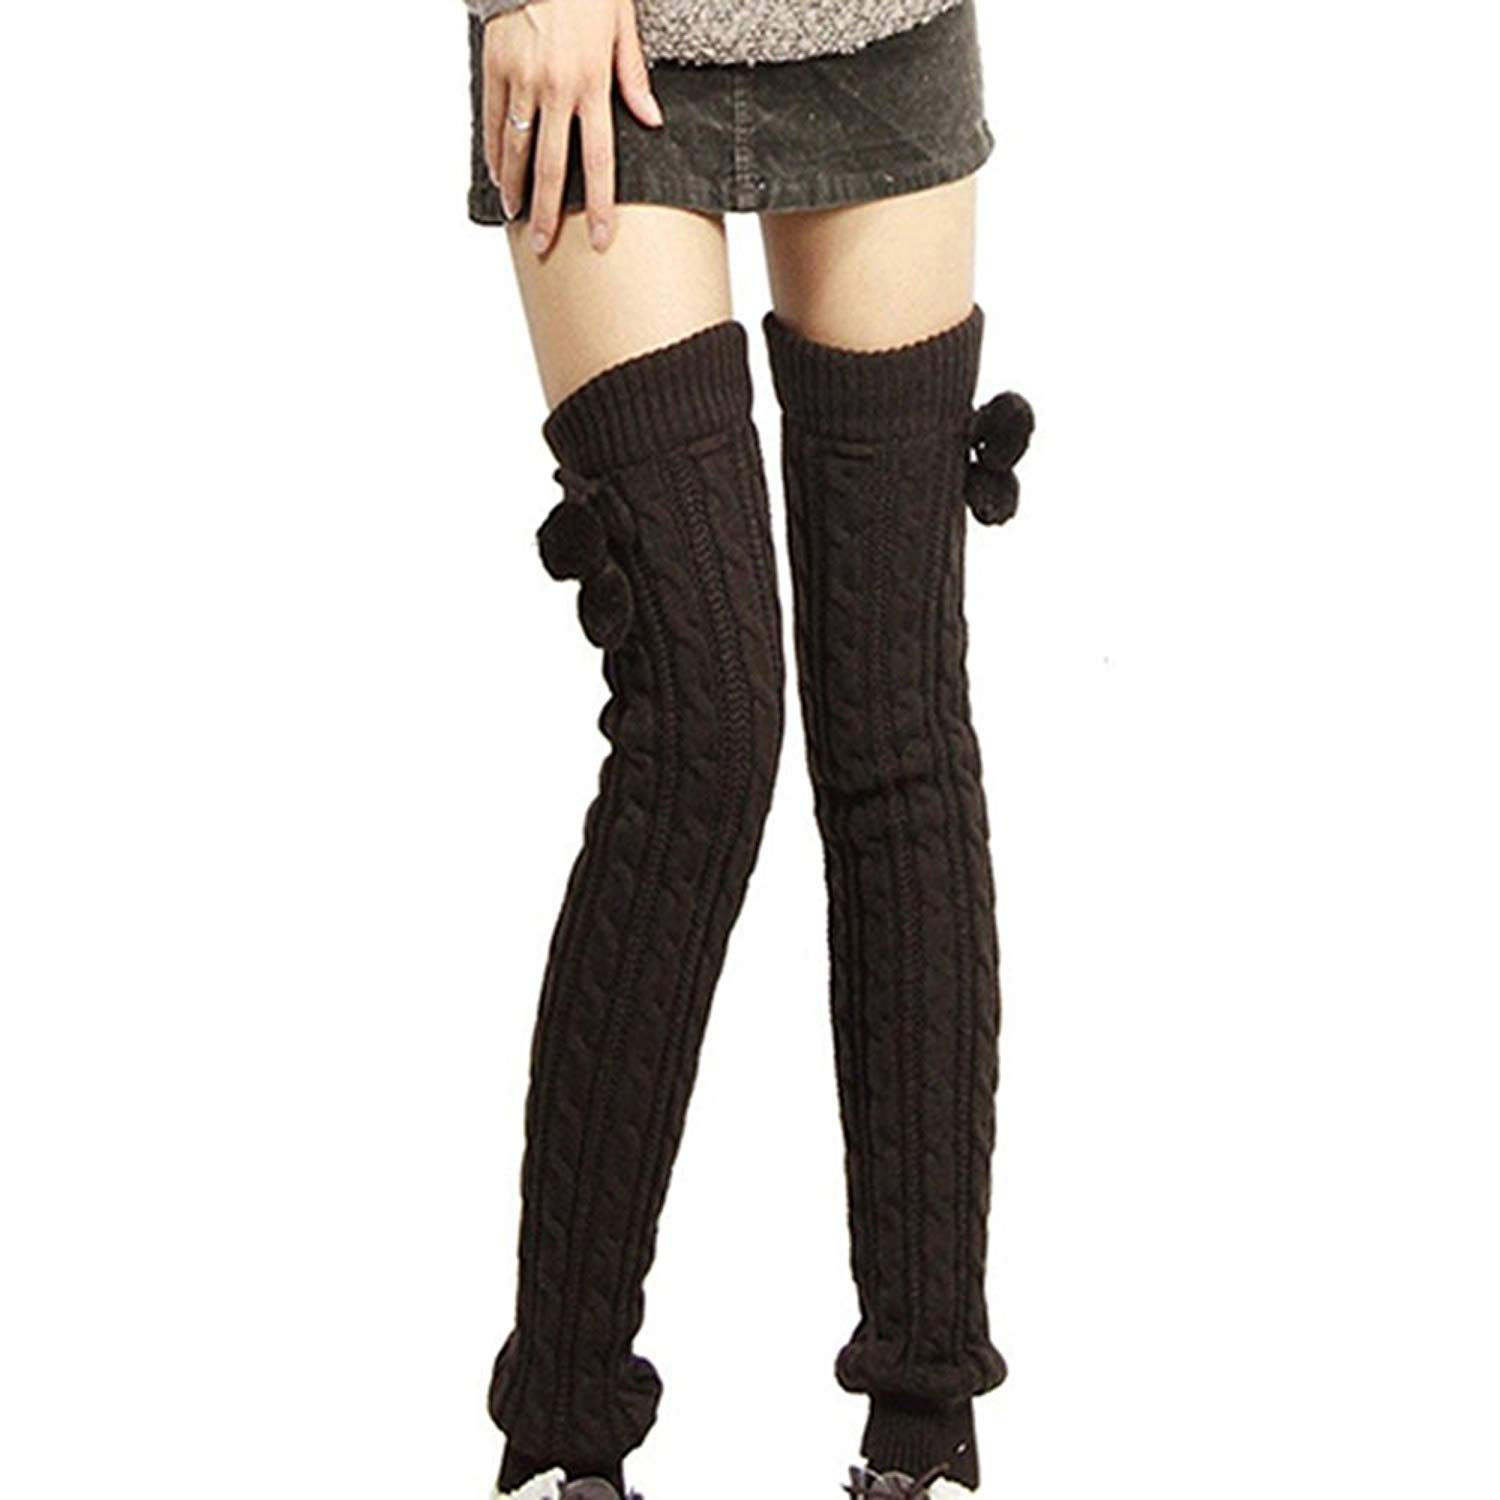 cd56e07b995 Sanwood Women s Braided Knitted Stocking Footless Leg Warmers (Black)   Amazon.co.uk  Clothing